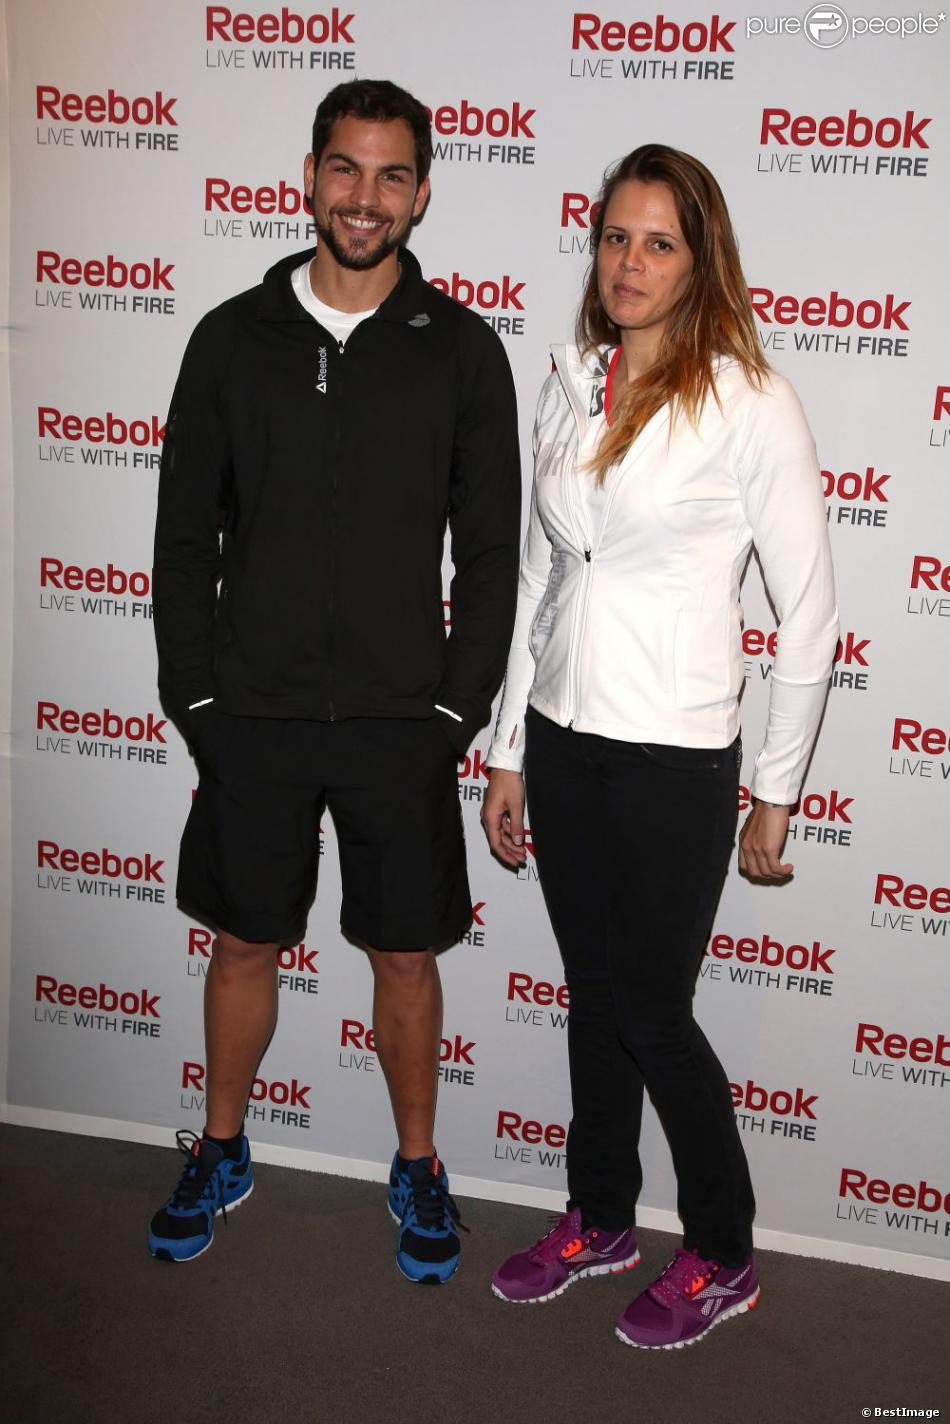 brice de koh lanta et laure manaudou lors d 39 un v nement organis par reebok au pure club med. Black Bedroom Furniture Sets. Home Design Ideas